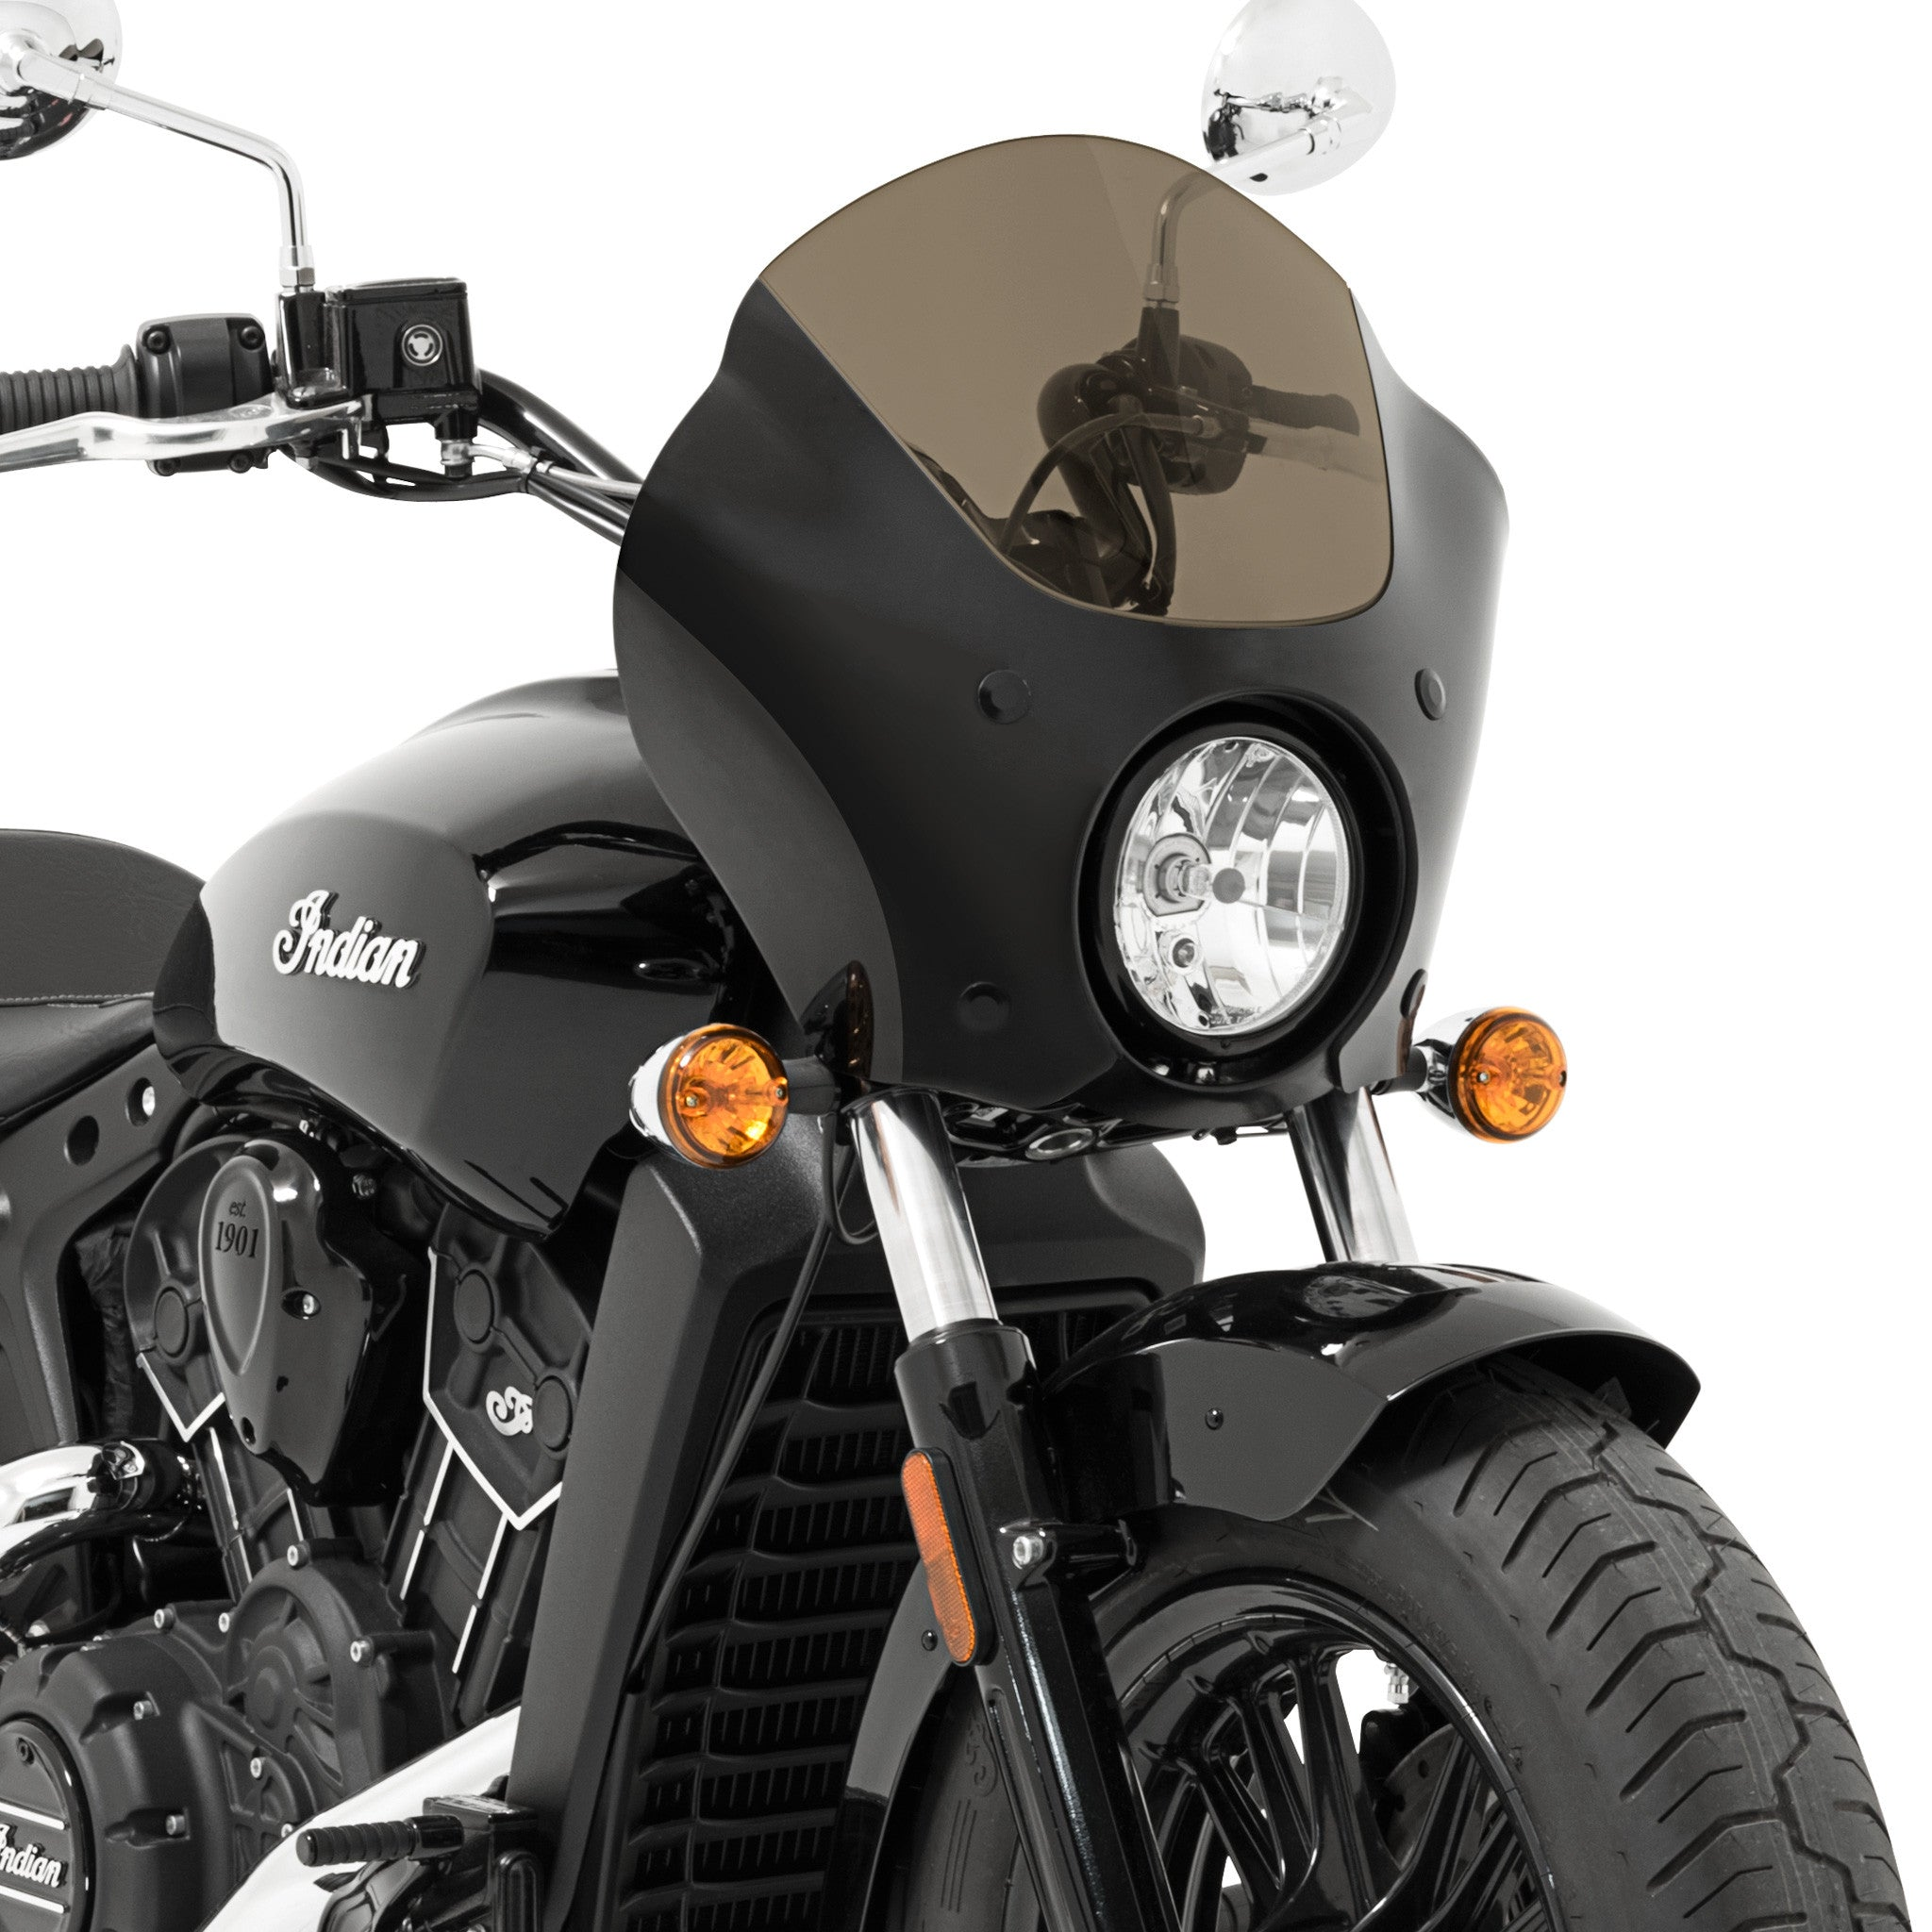 Gauntlet Fairing for 2015 - 2018 Indian Scout and Scout-Sixty